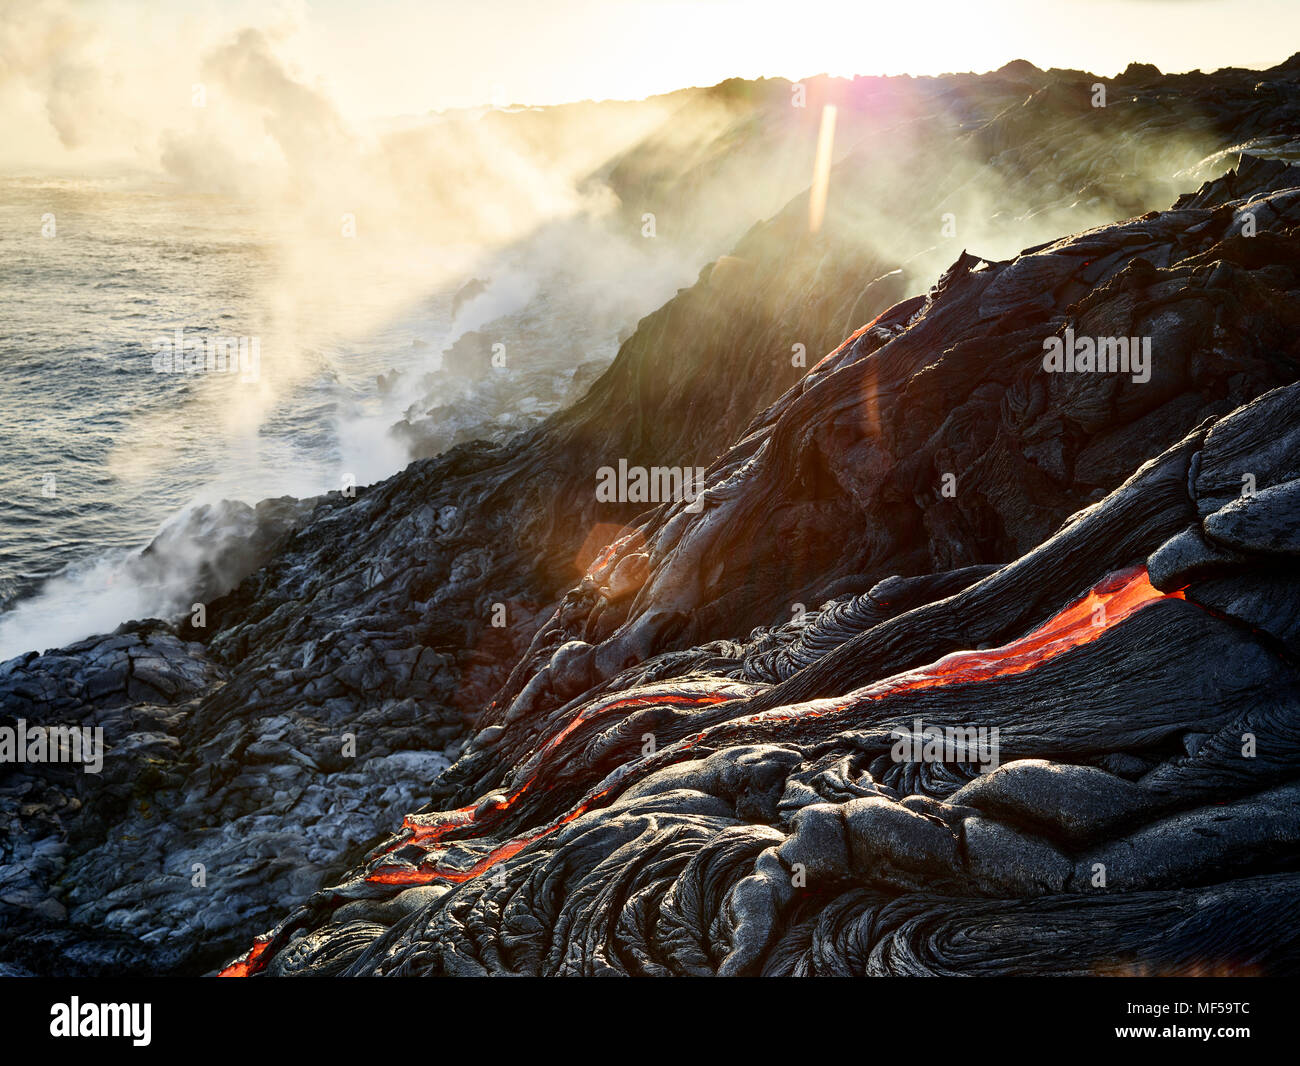 Hawaii, Big Island, Hawai'i Volcanoes National Park, lava flowing into pacfic ocean - Stock Image